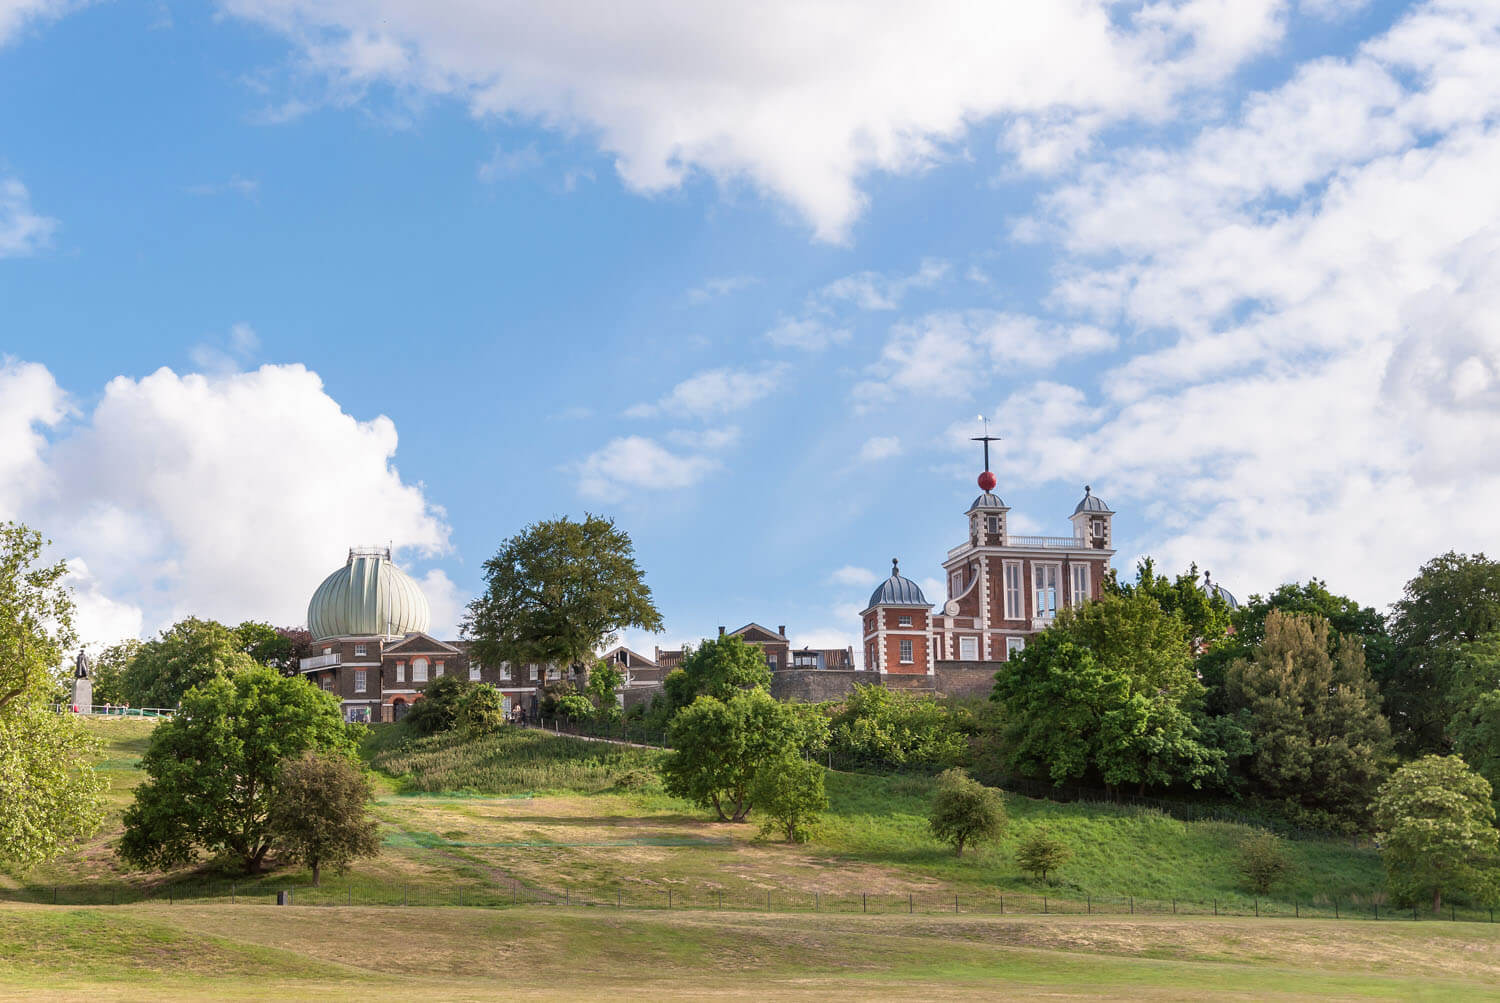 Royal Observatory in Greenwich park, London